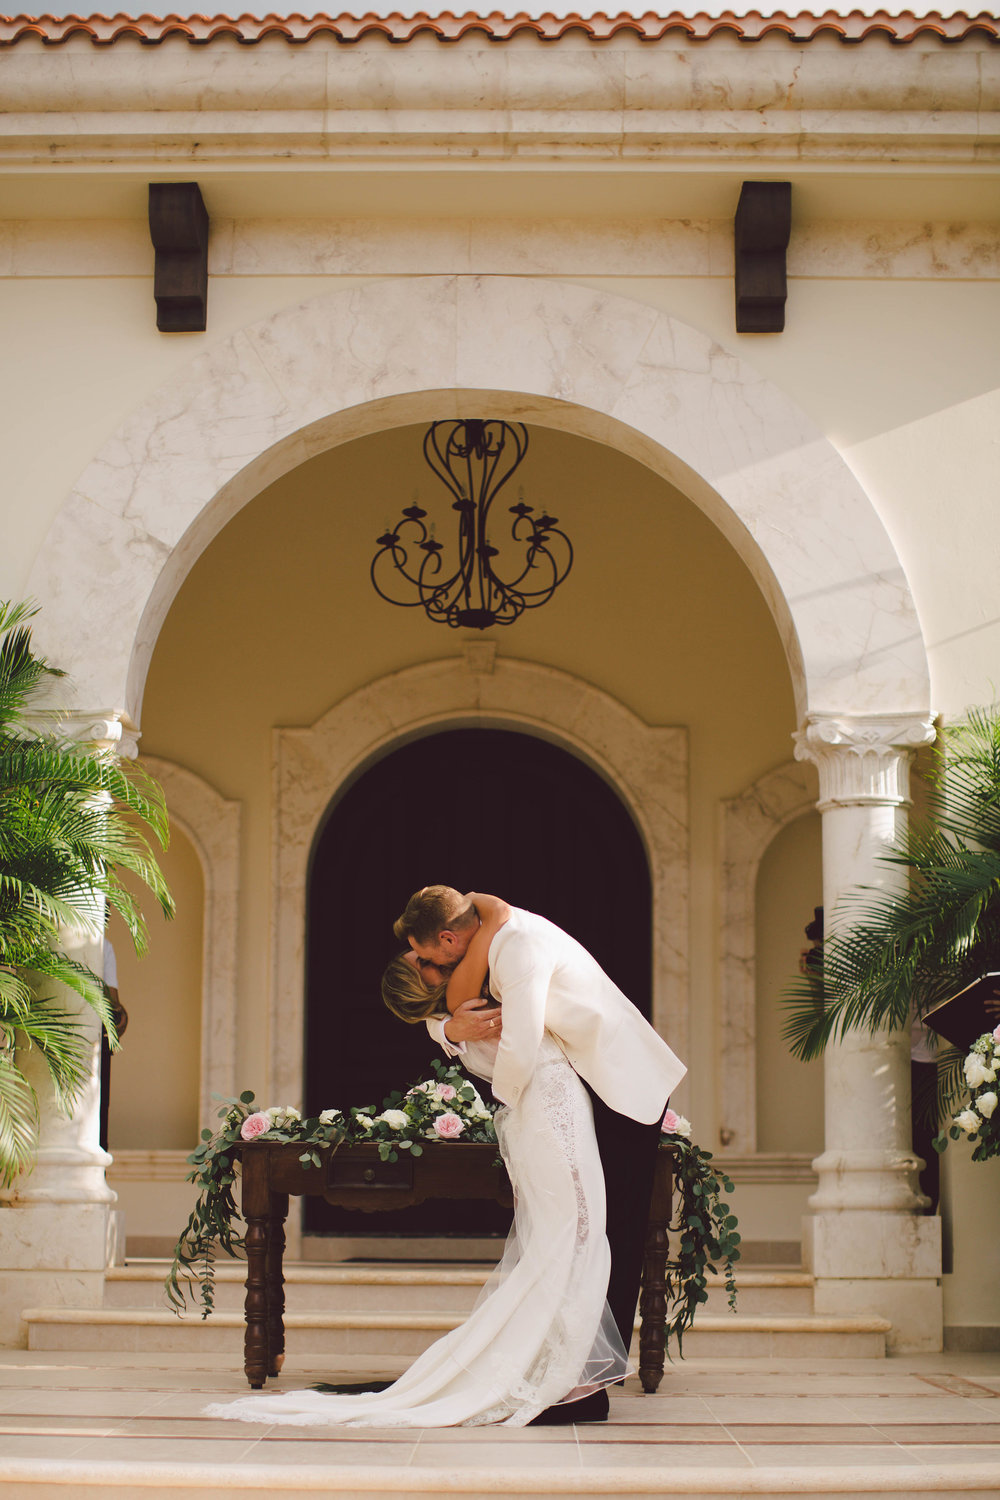 mexico_wedding_cancun_villa_la_joya_evangeline_lane_065.jpg